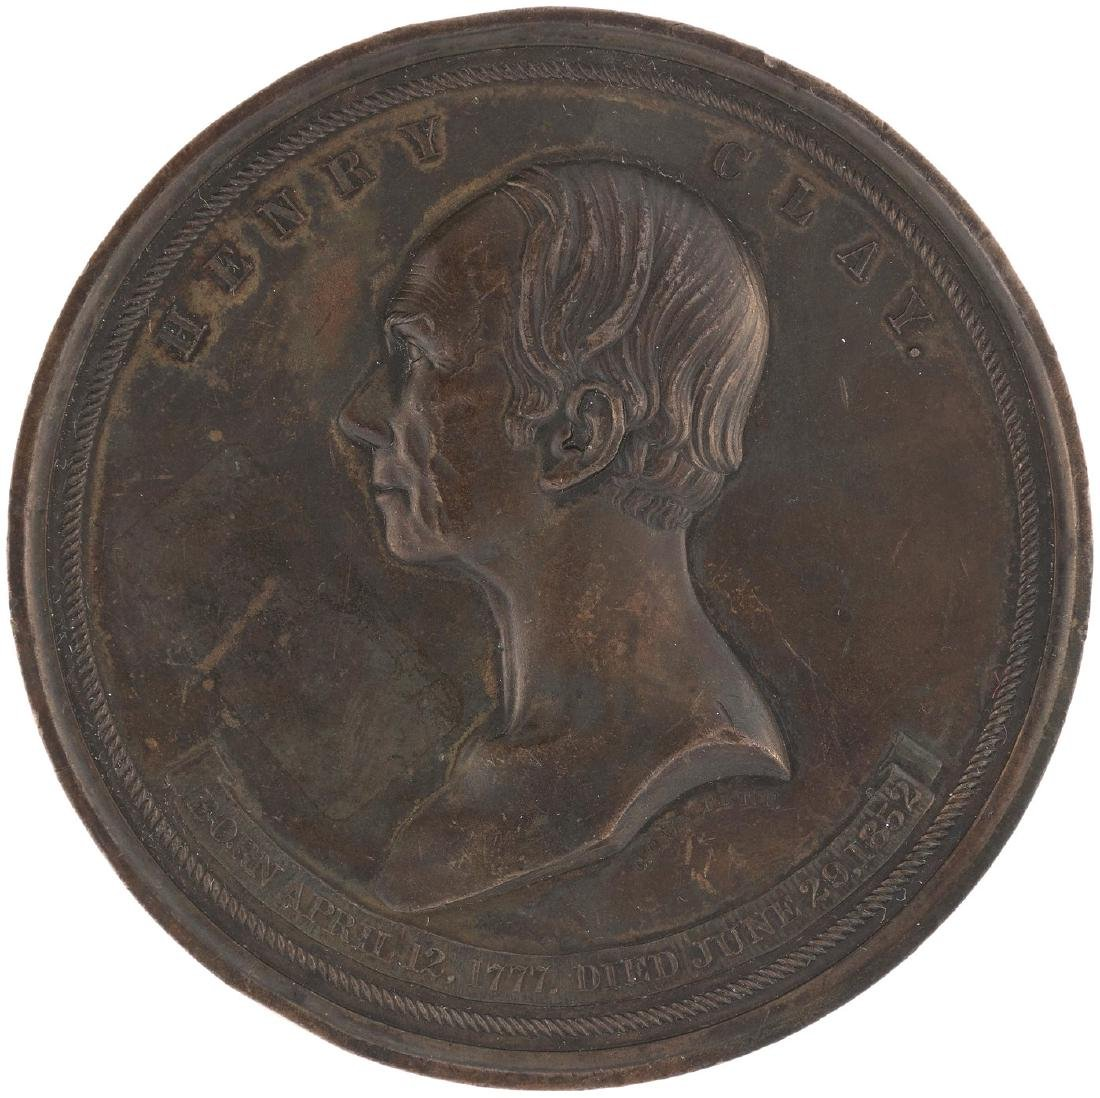 HENRY CLAY 1852 LARGE BRONZE MEDAL BY ENGRAVER C.C. WRIGHT STRUCK BY THE U.S.MINT.